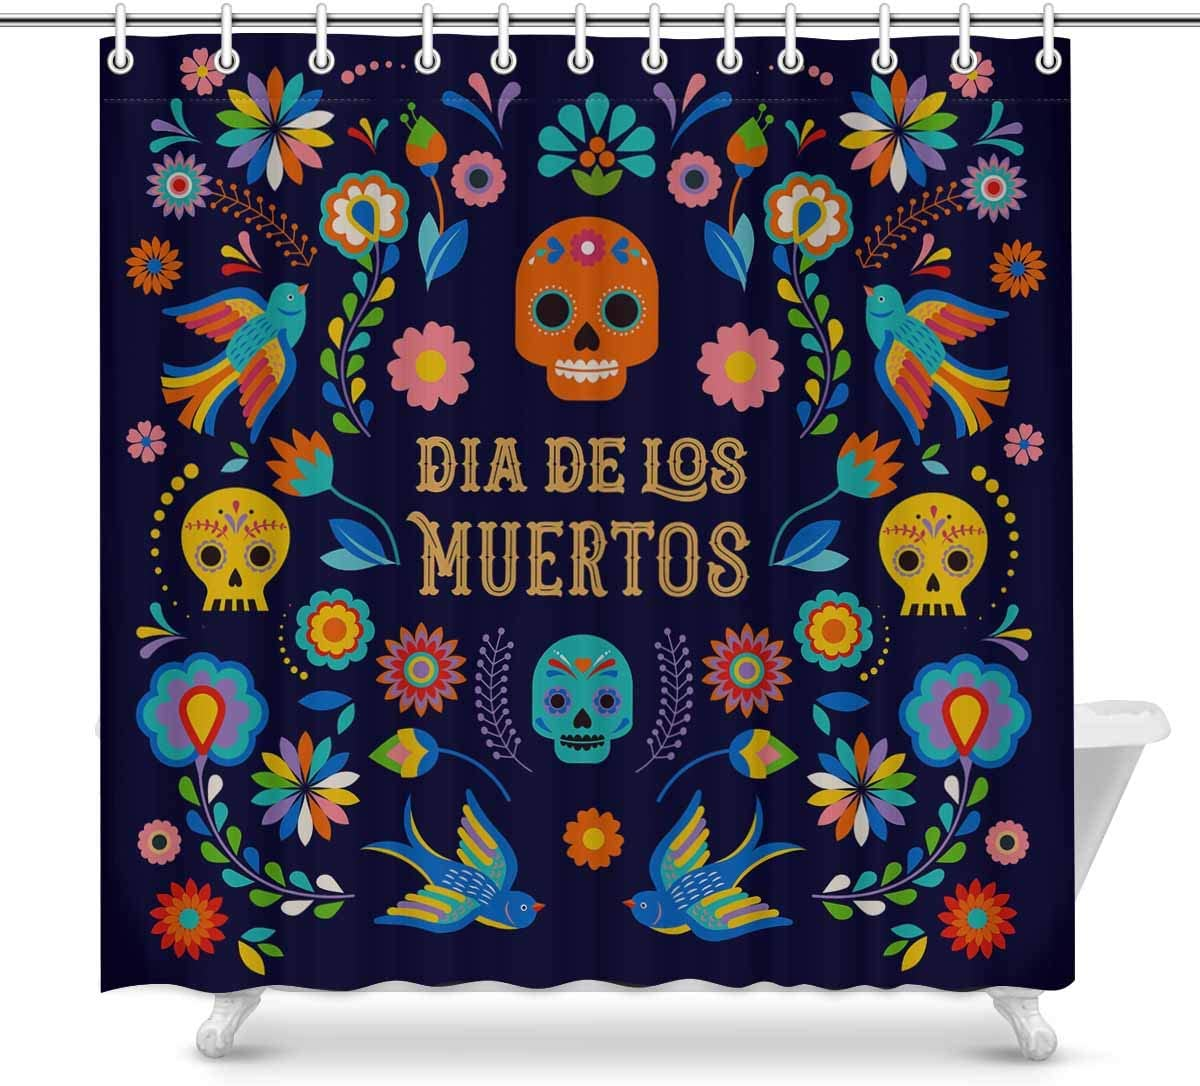 Interestprint Novelty Shower Curtain Bathroom Sets Day Of The Dead Dia De Los Moertos Skull Funny Fabric Home Bath Decor 70 X 69 Inches Home Kitchen